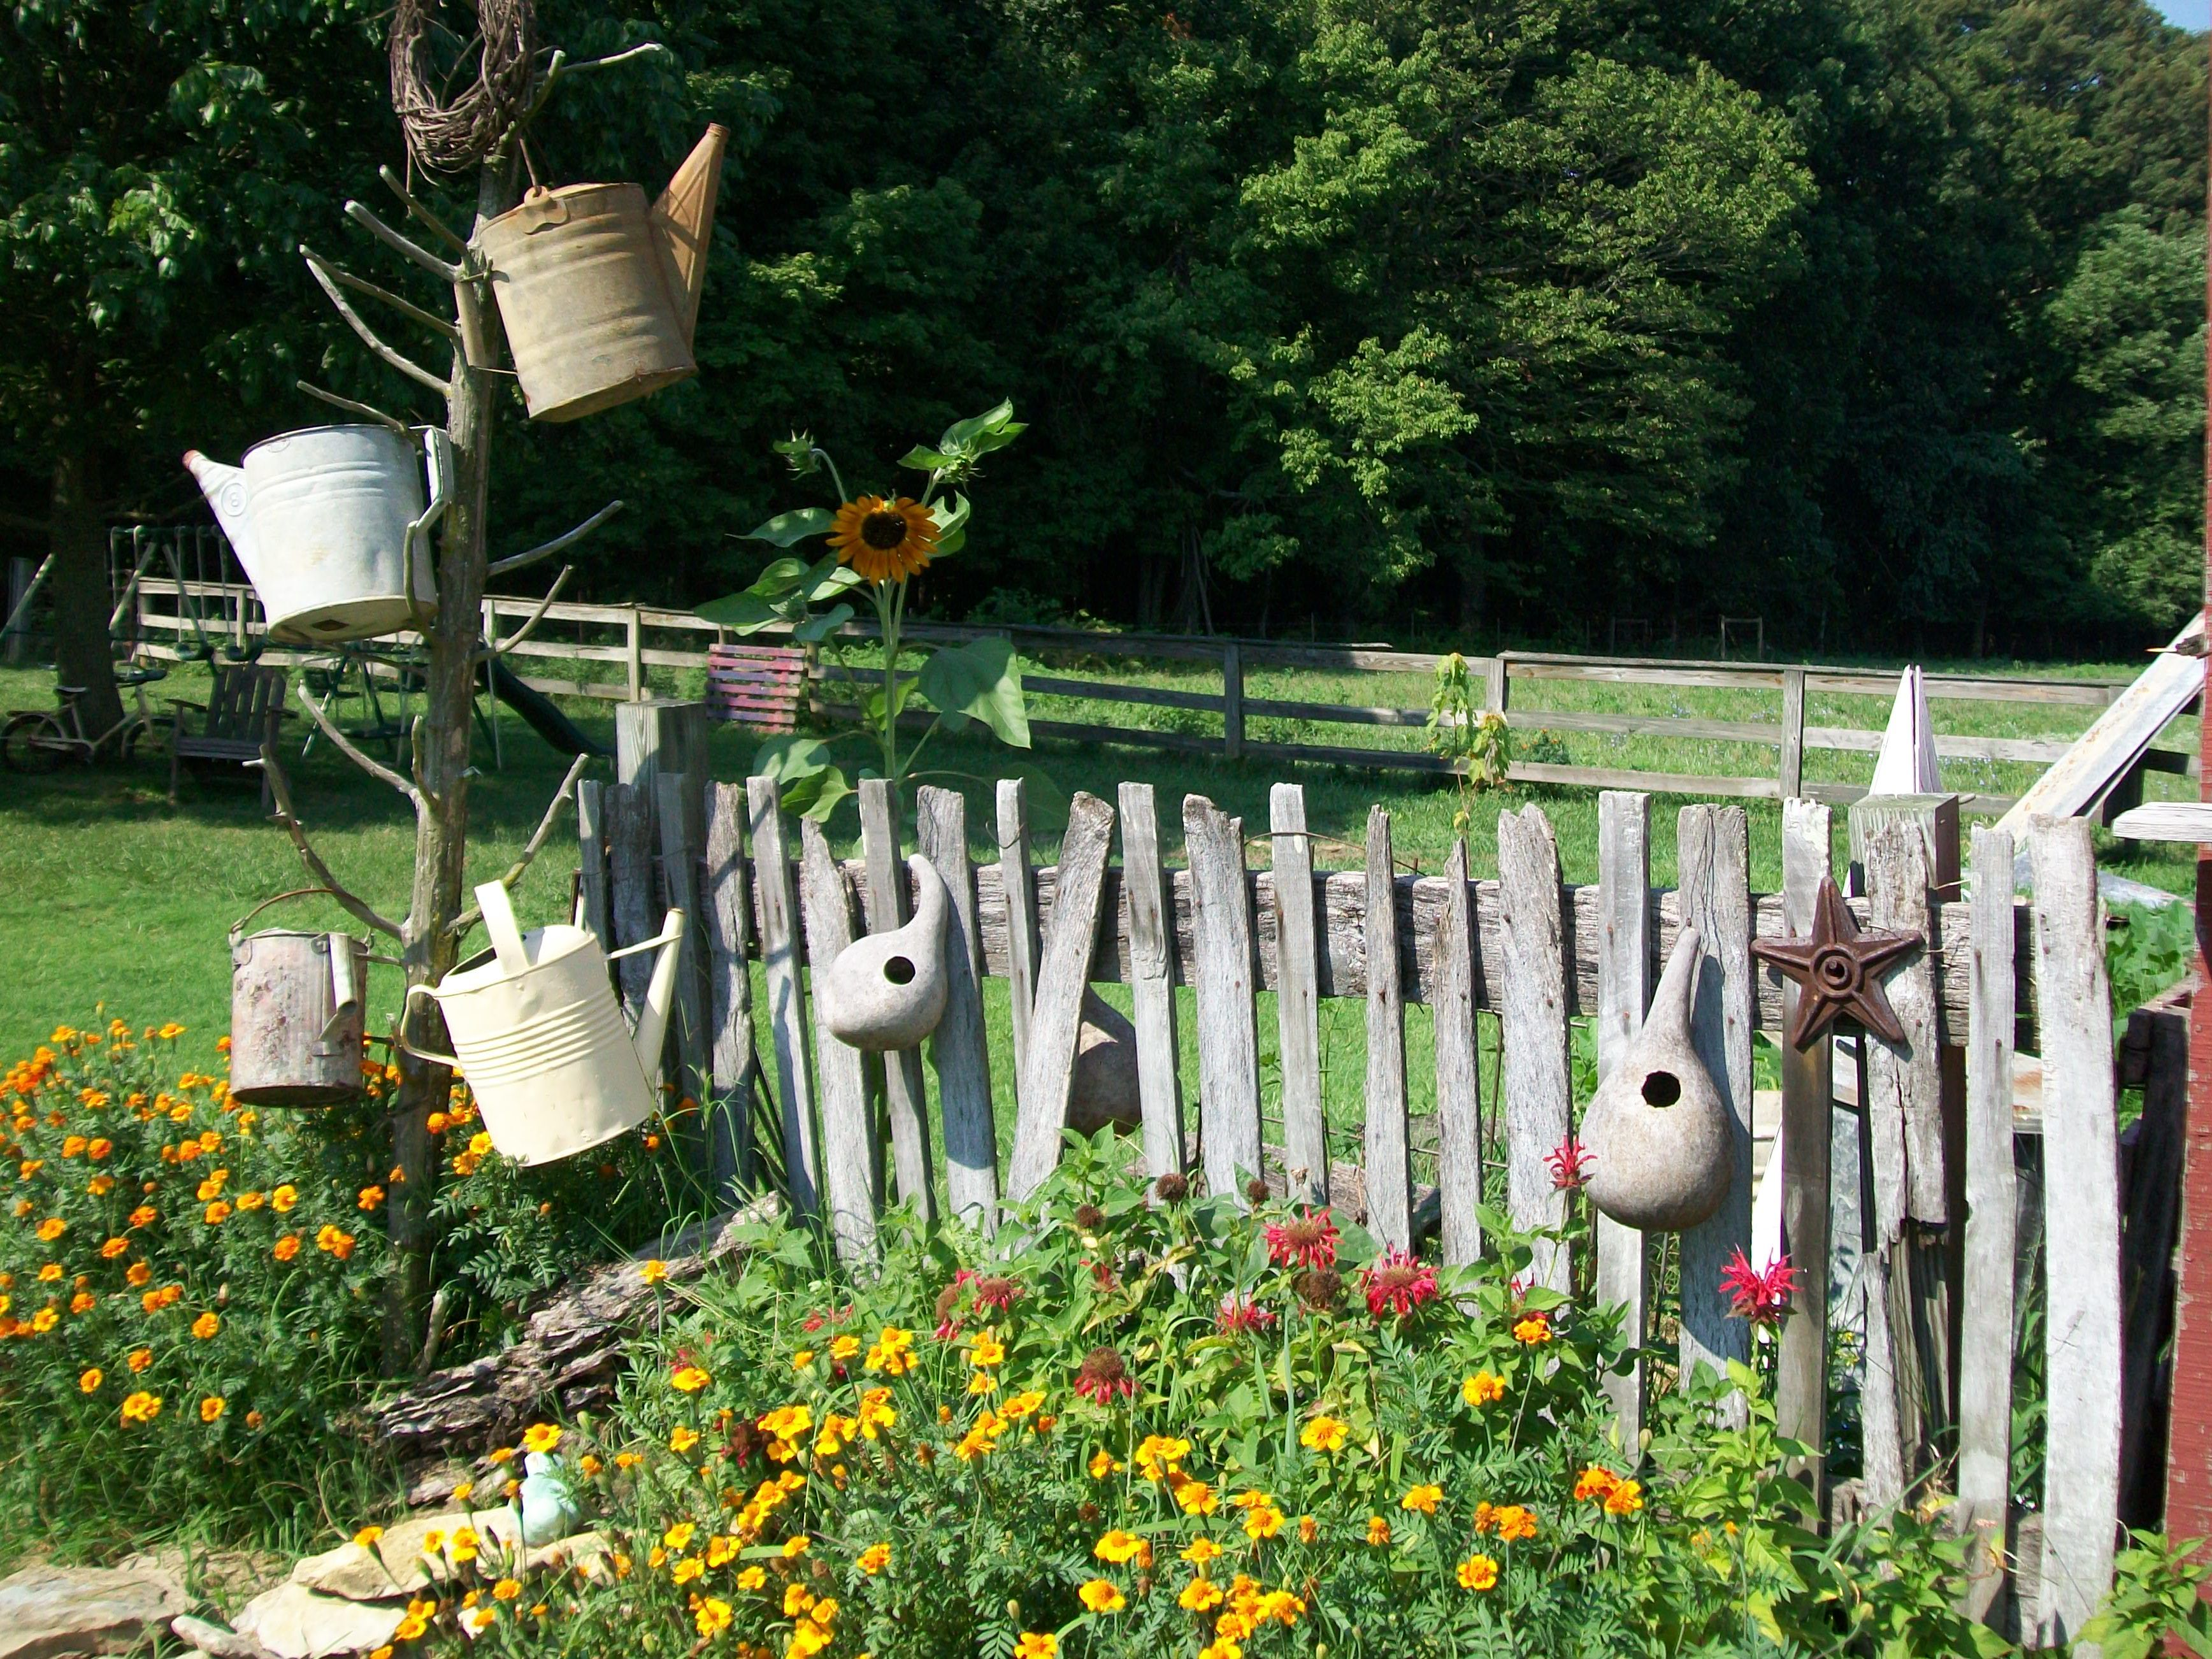 Yard Art From Old Garden Tools